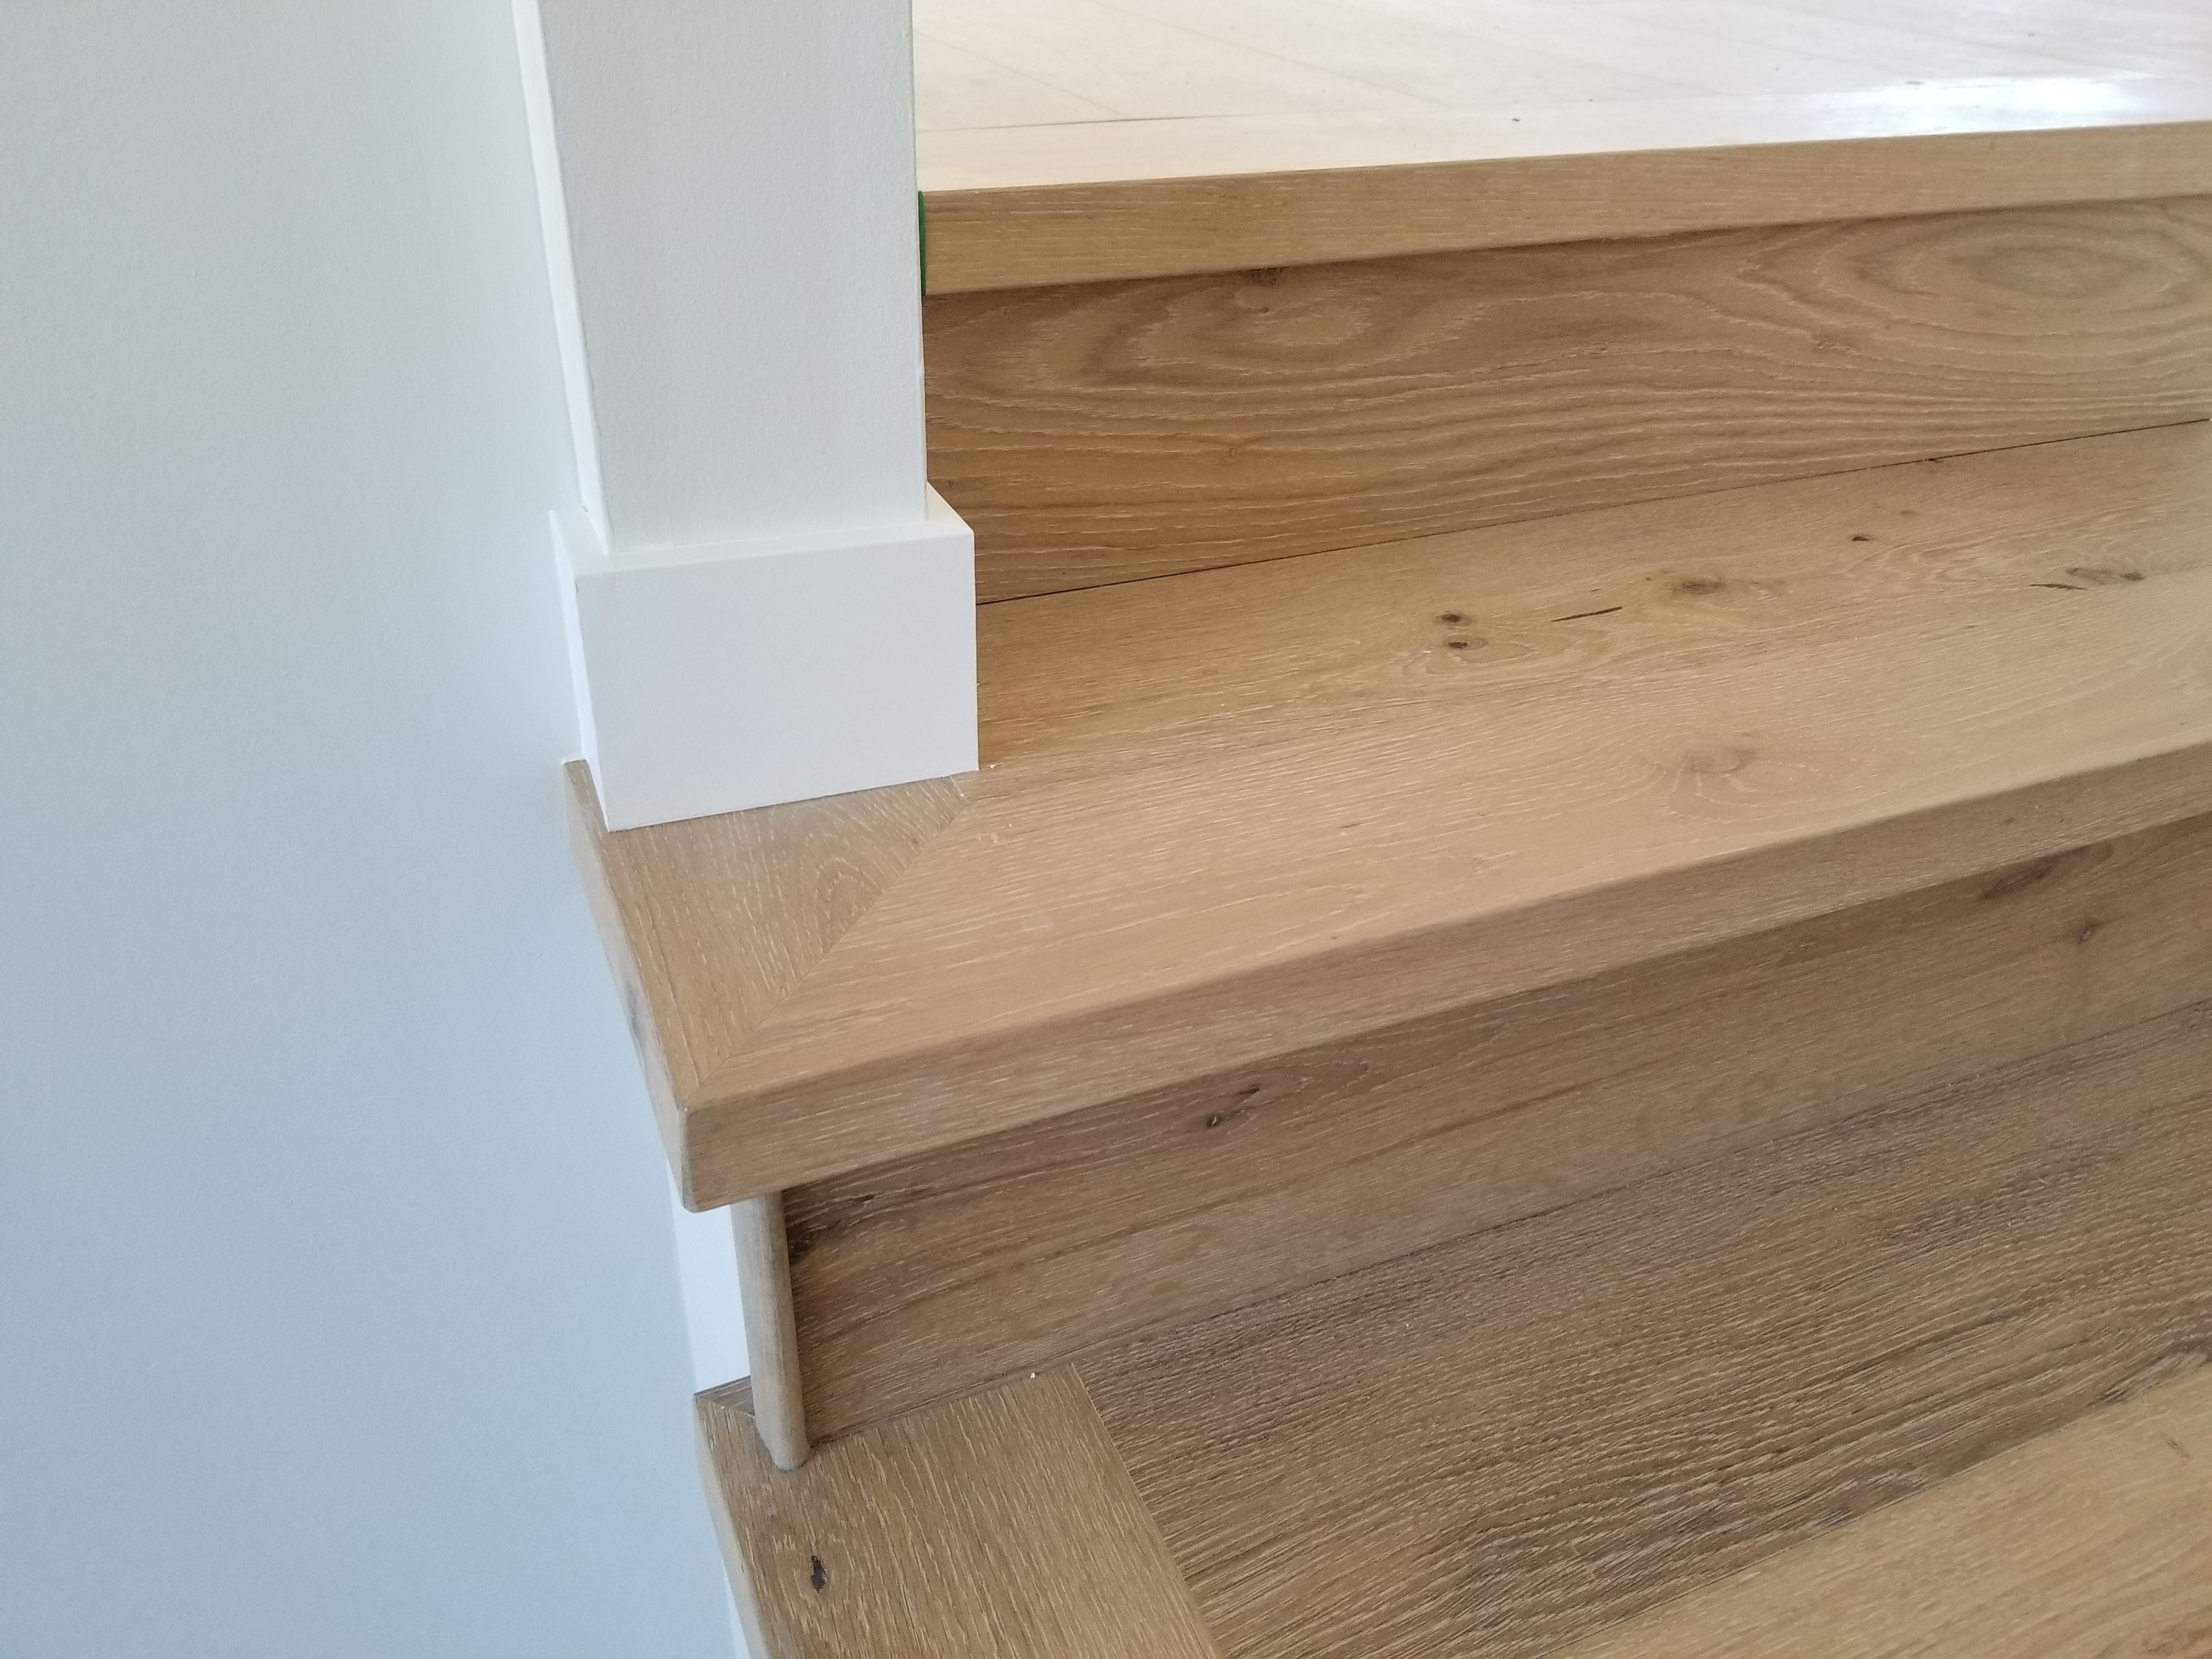 We Produce And Install Luxury Vinyl Nosing And Engineered Hardwood Nosing That Match Your Flooring Vinyl Stair Nosing Luxury Vinyl Engineered Hardwood Flooring